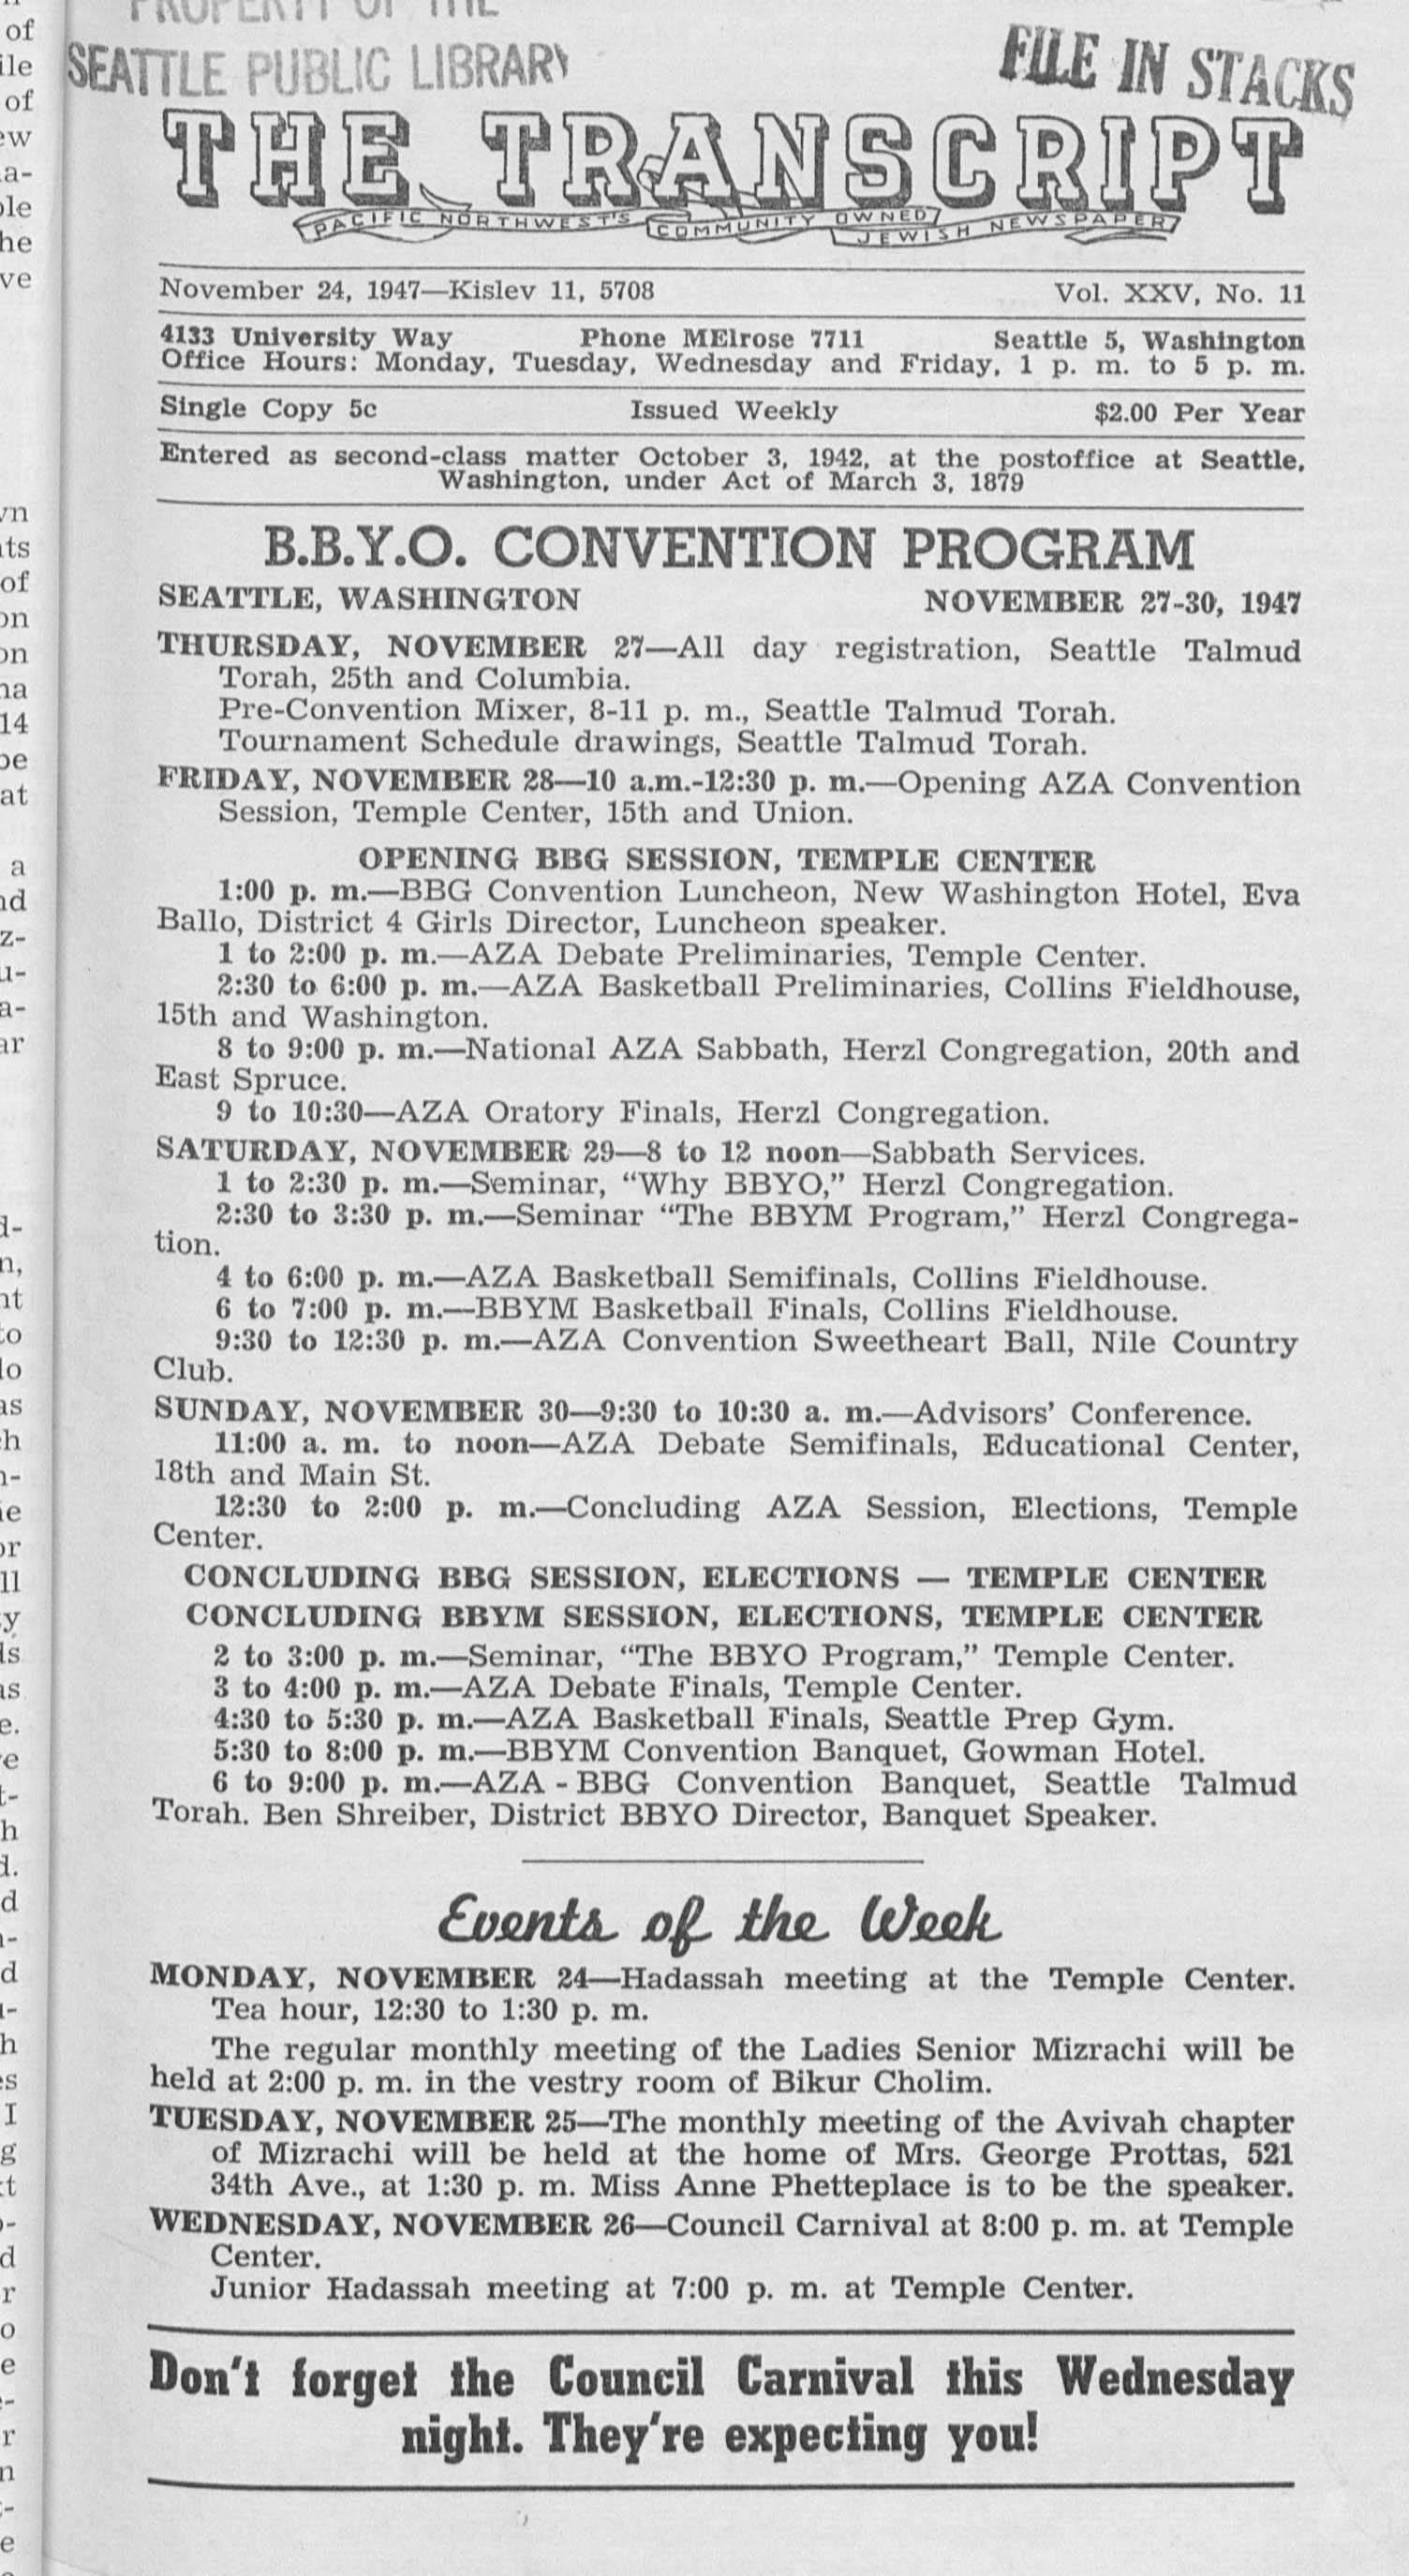 Jewish Transcript, v. 25, no. 11,  Nov. 24, 1947